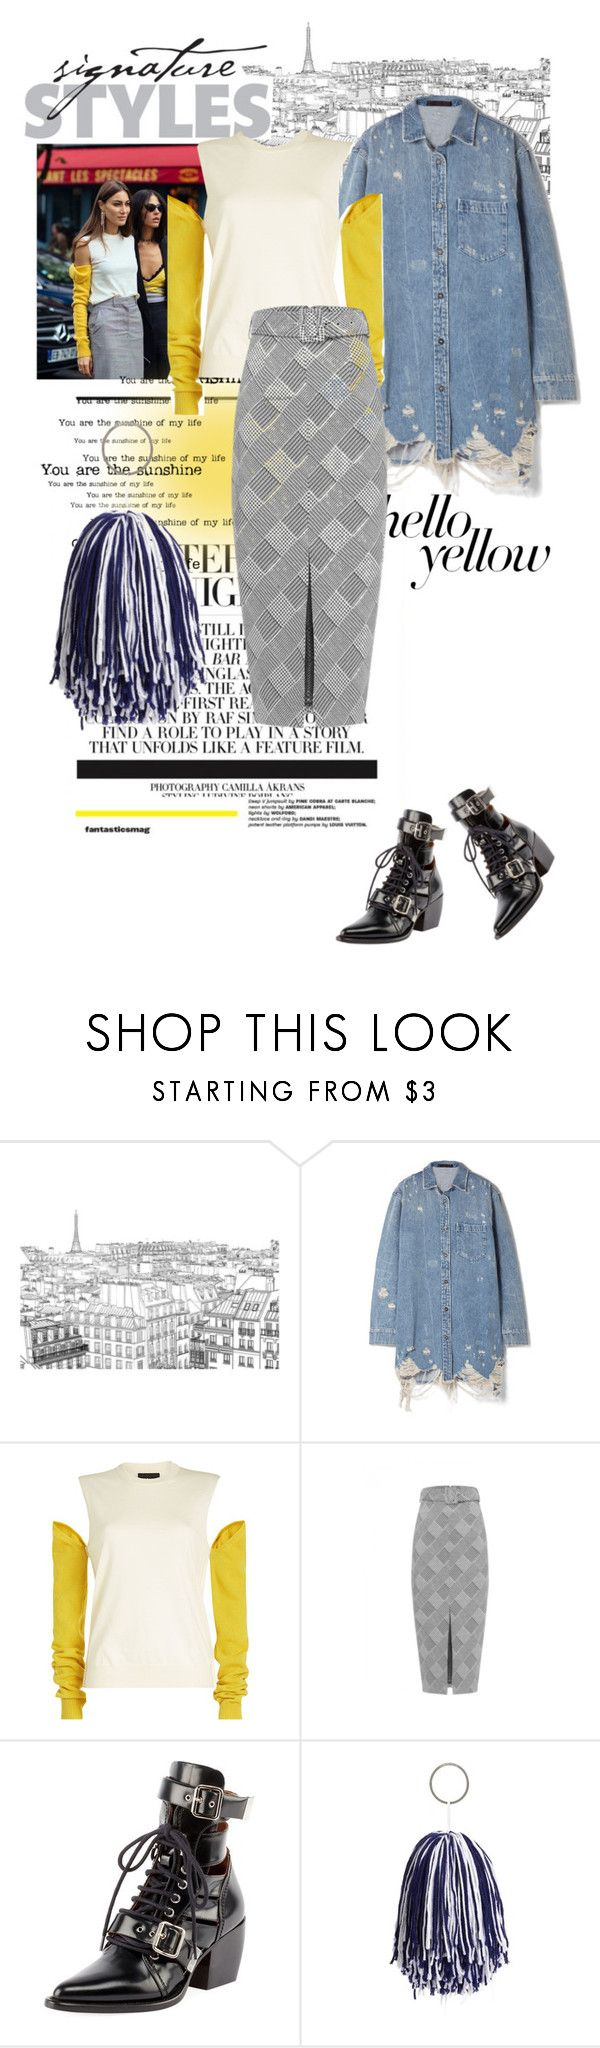 """""""#167"""" by yolins ❤ liked on Polyvore featuring Alexander Wang, Calvin Klein 205W39NYC, Chloé, PopsOfYellow and NYFWYellow"""